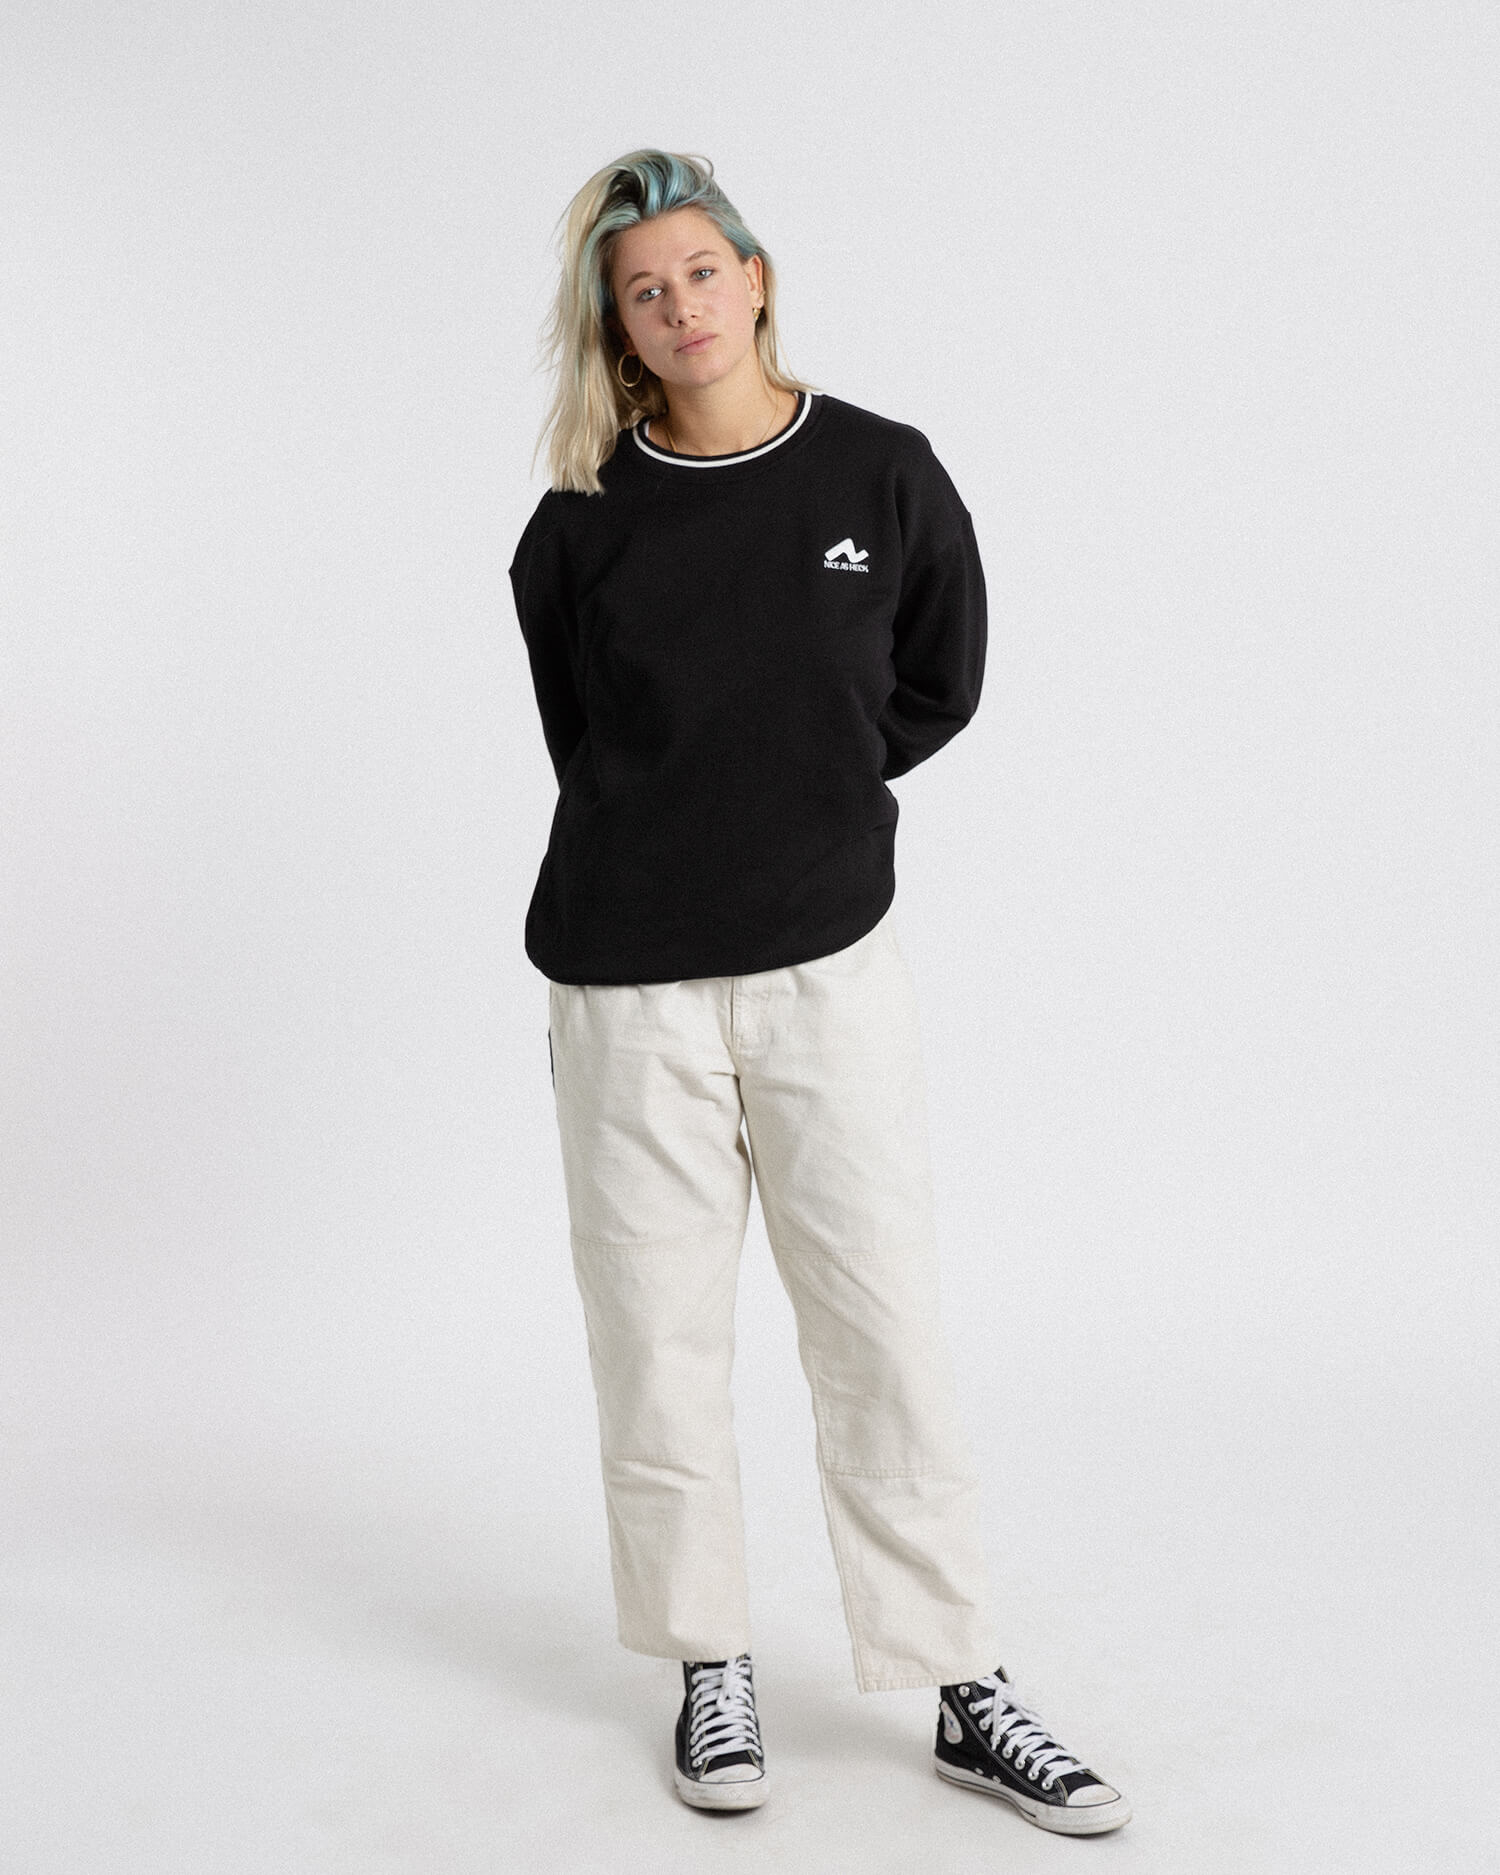 female model wearing the black campfire crewneck front view